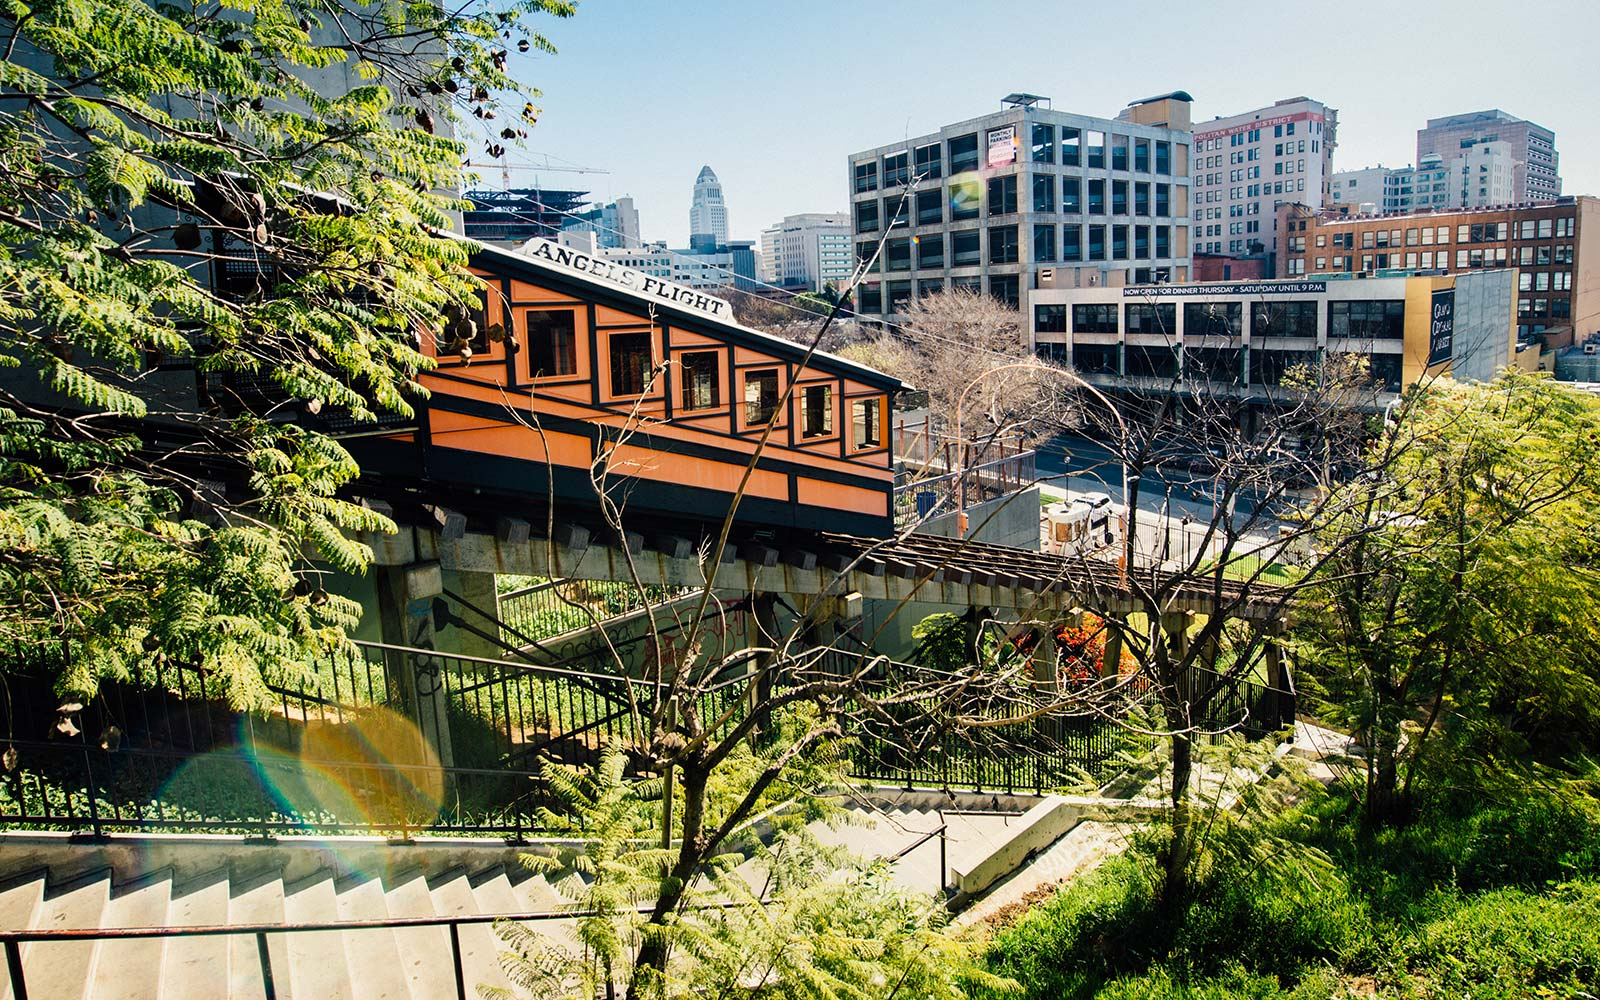 Angels Flight is a Funicular Railway in Bunker hill district connecting Hill Street and California Plaza in Los Angeles, California.